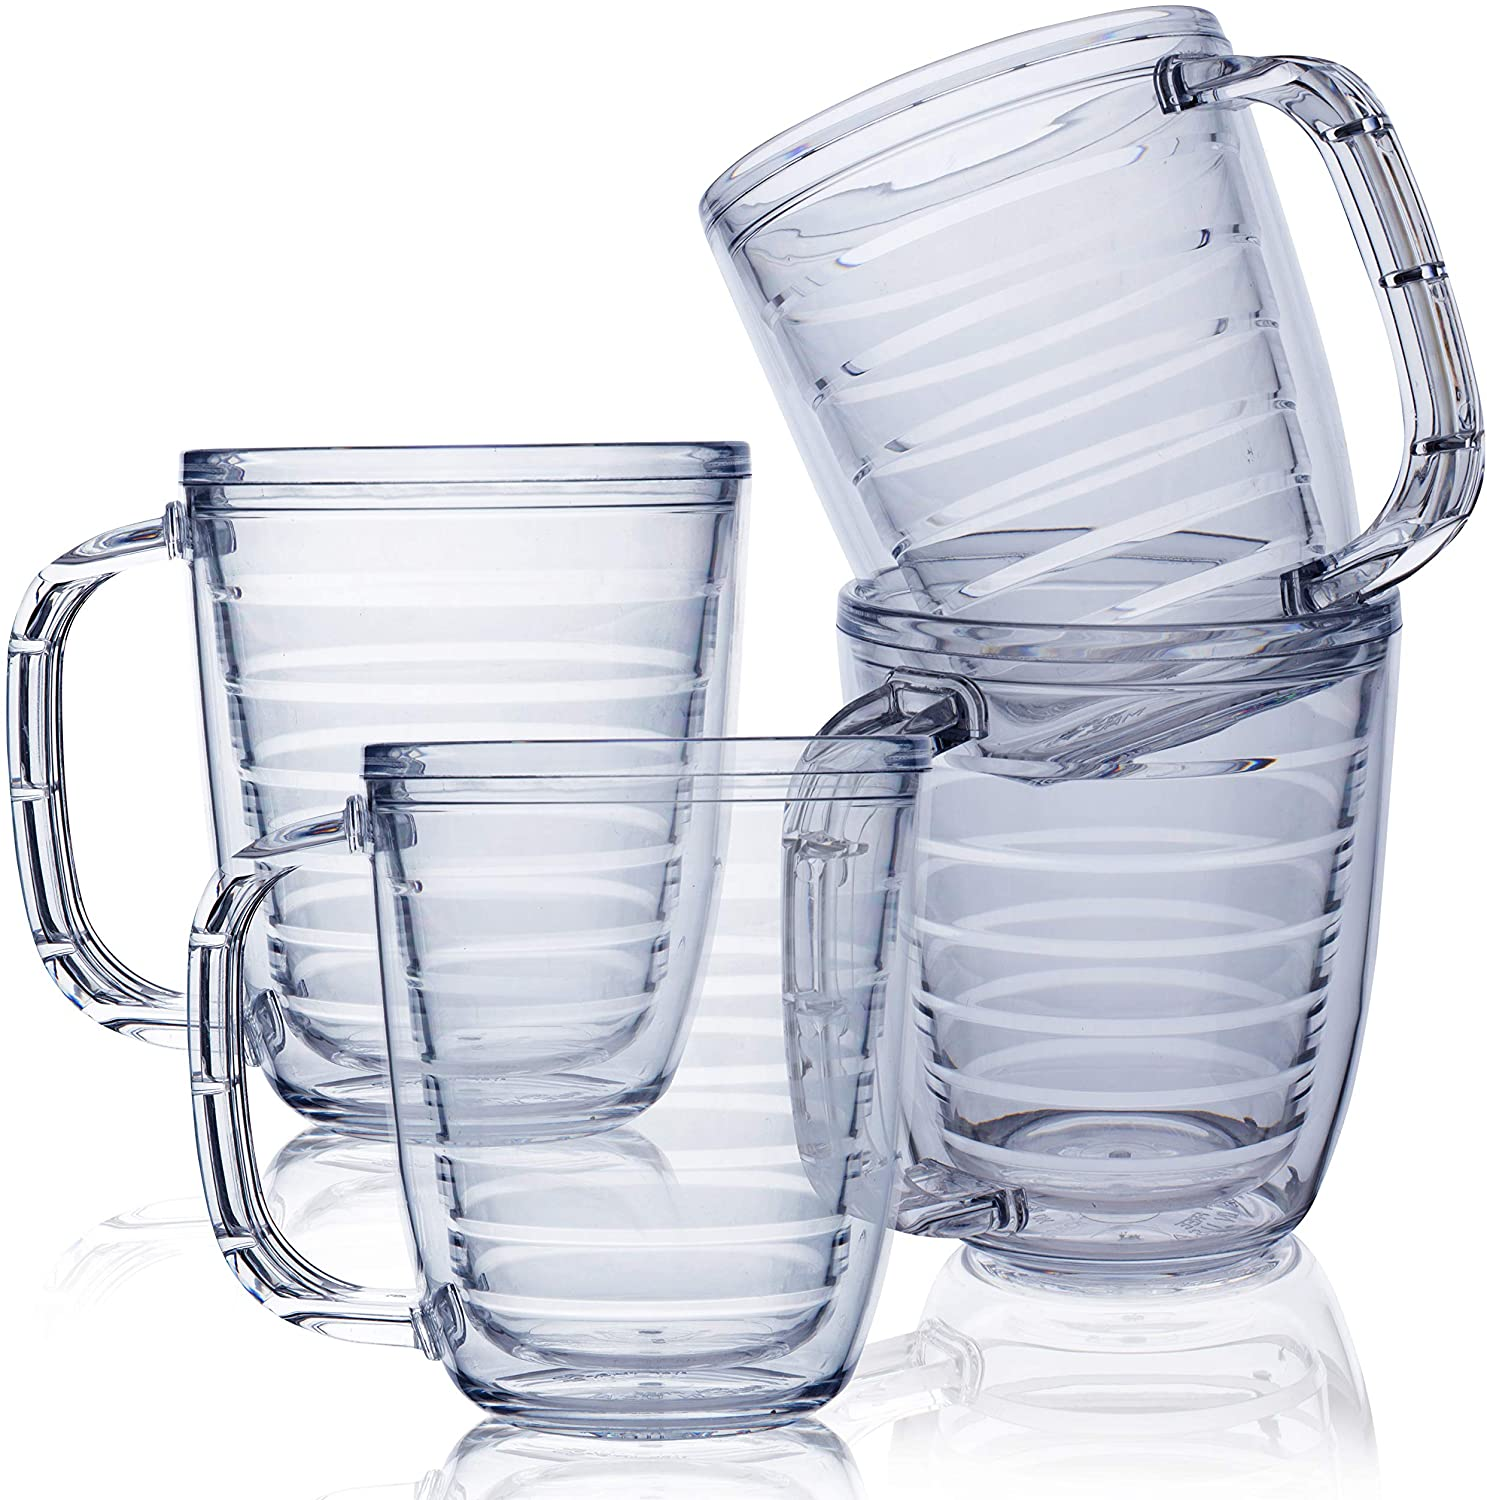 Tritan Plastic Mugs - Clear Insulated 12 Ounce Coffee Cups - Double Wall Insulation - Scratch-Resistant Chip-Proof Shatterproof Clear Coffee Mug in Packs of 4